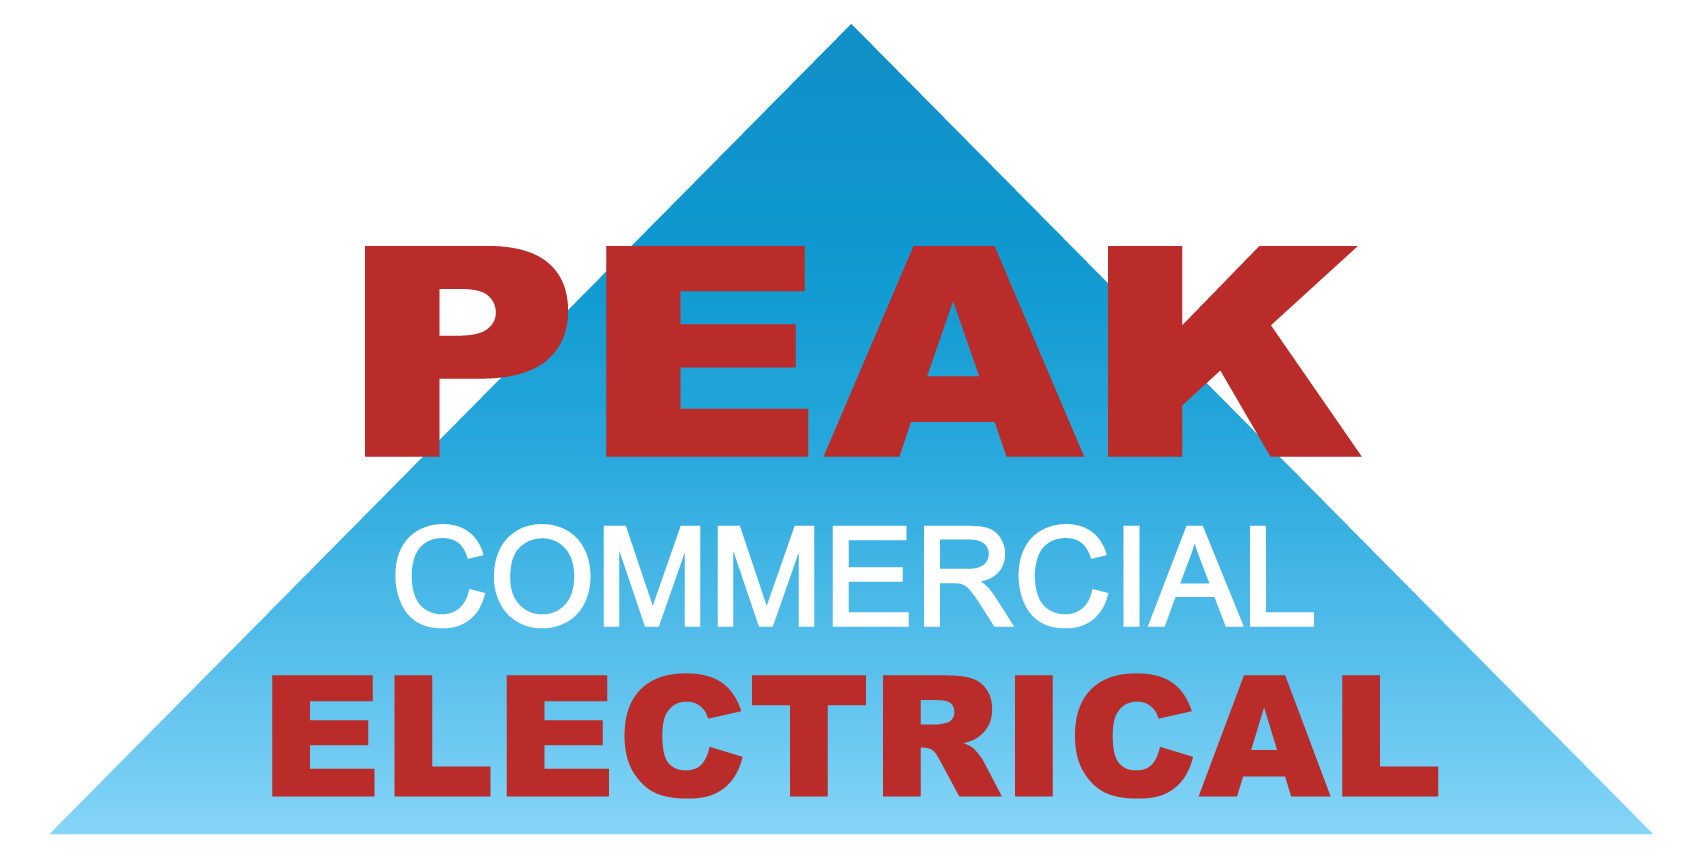 Peak Commercial Electrical